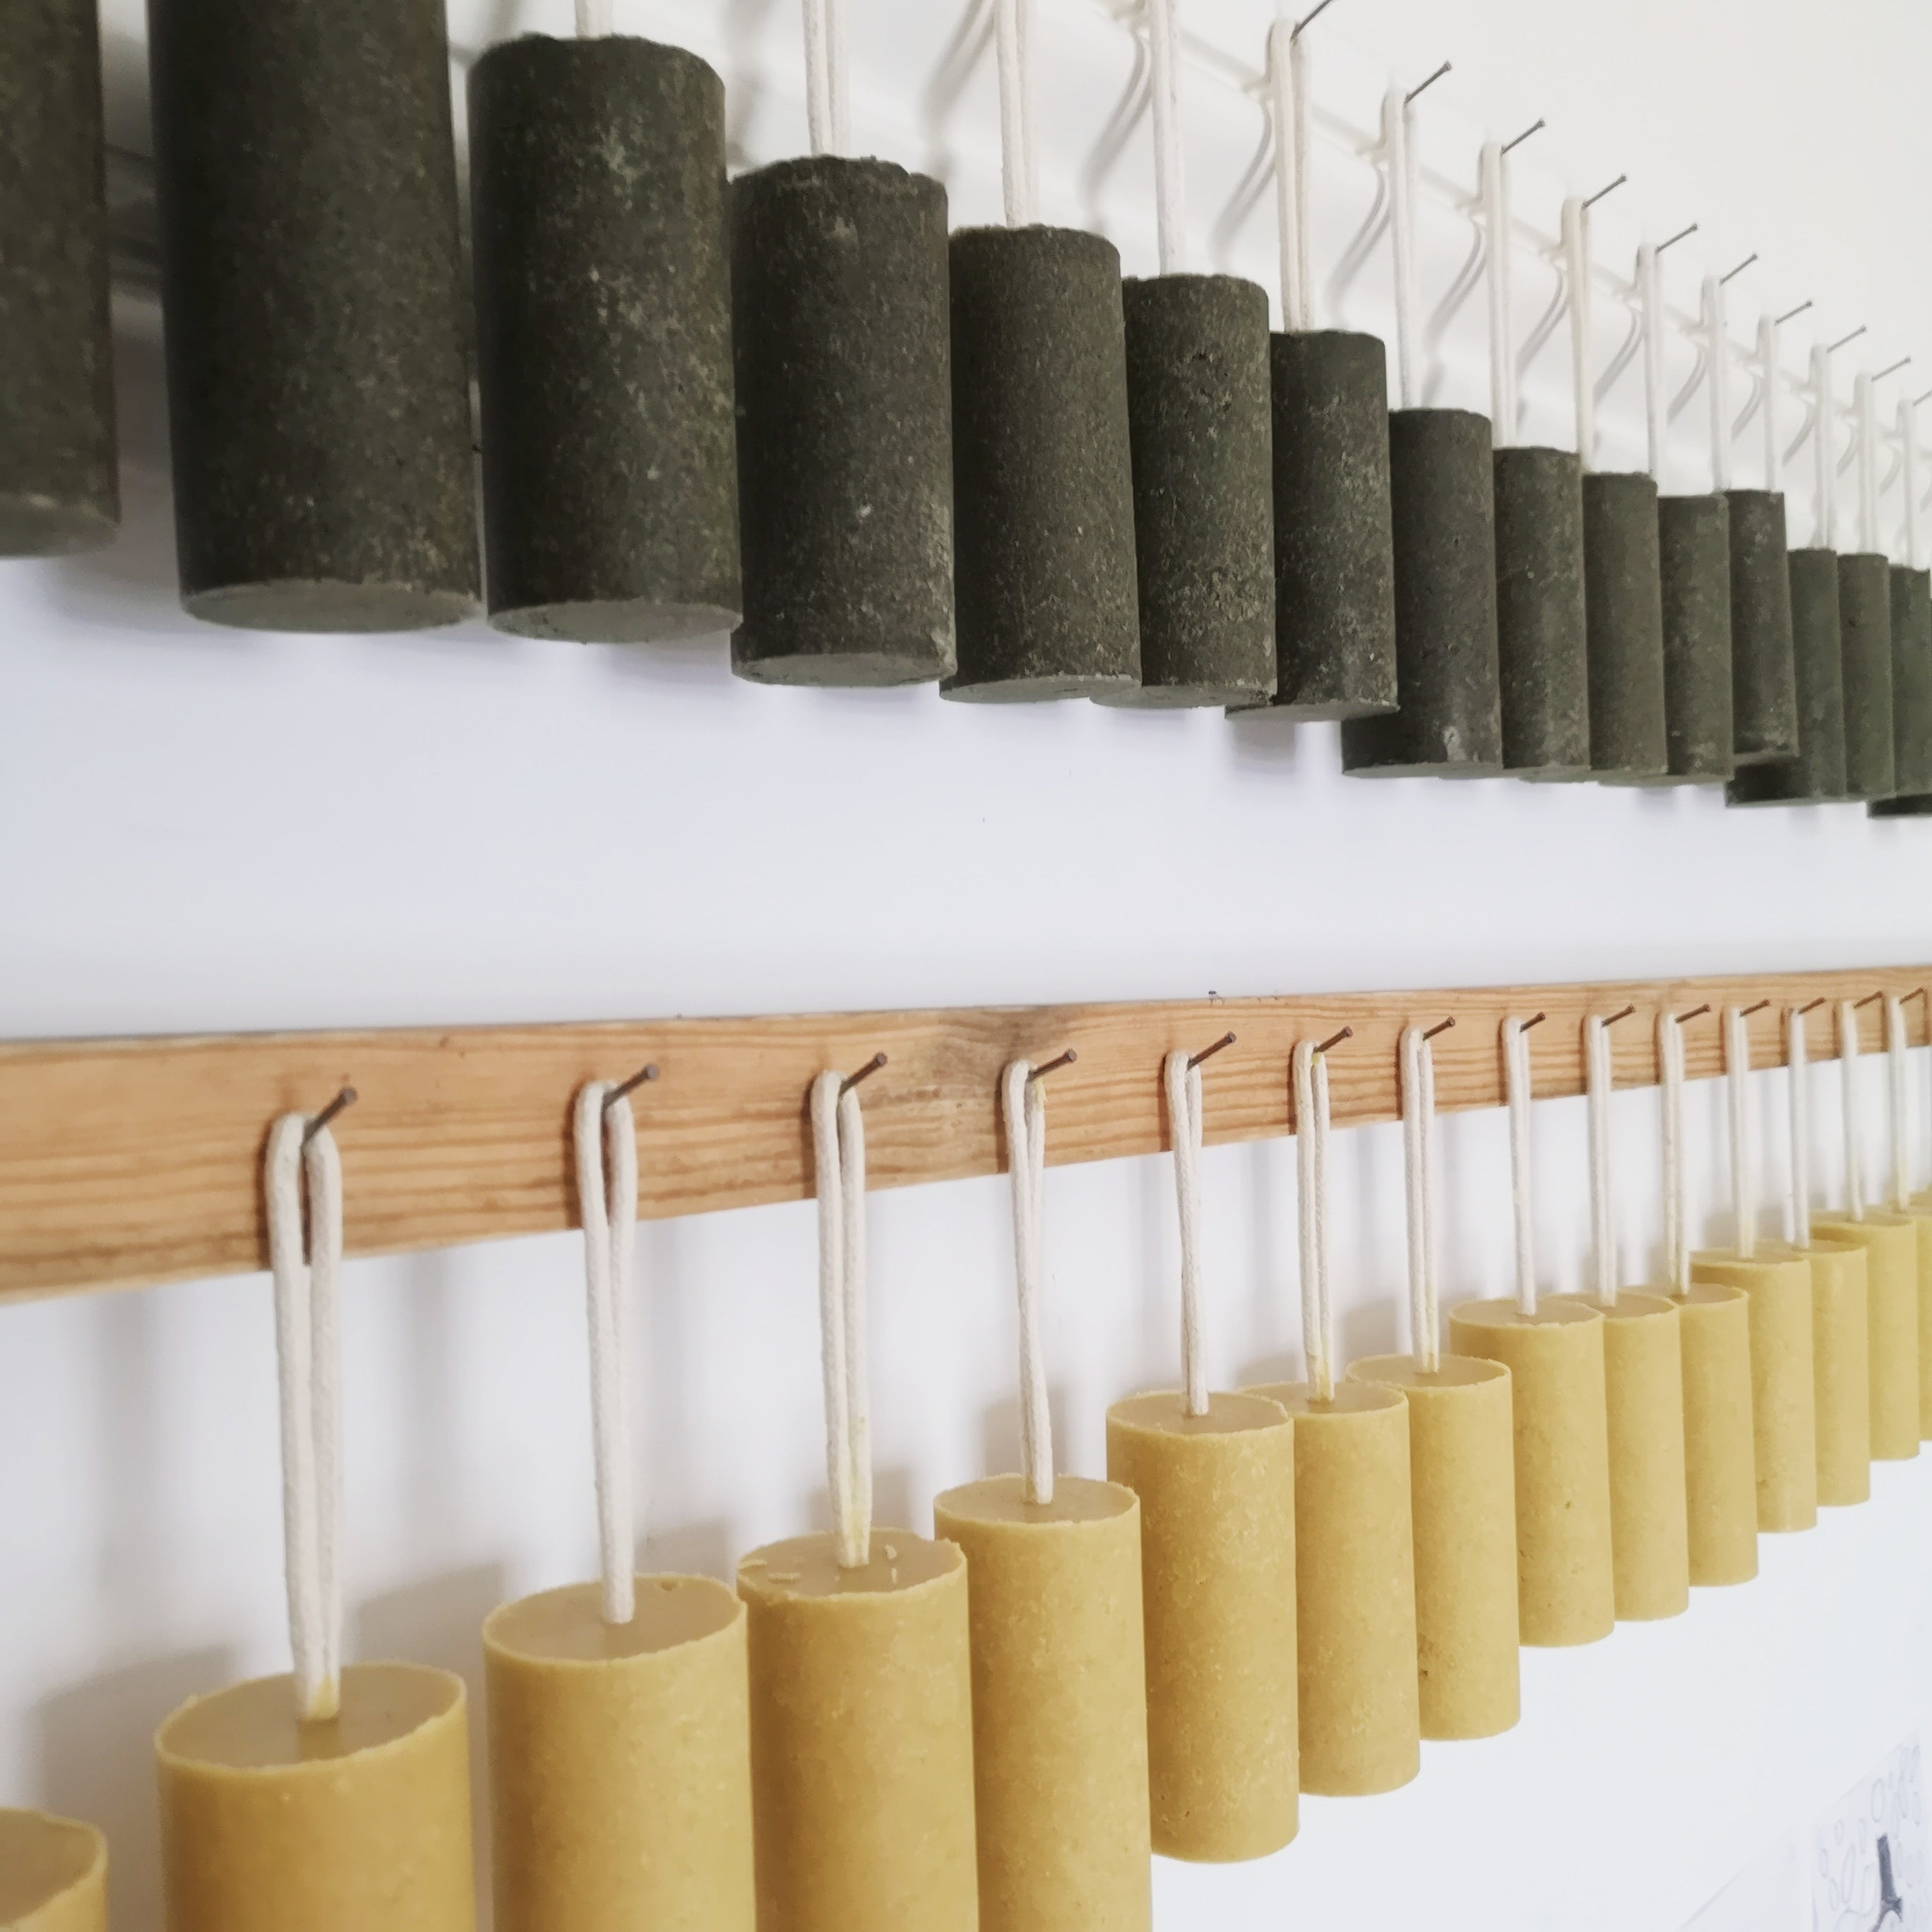 Shampoo bars hanging on a wooden rack